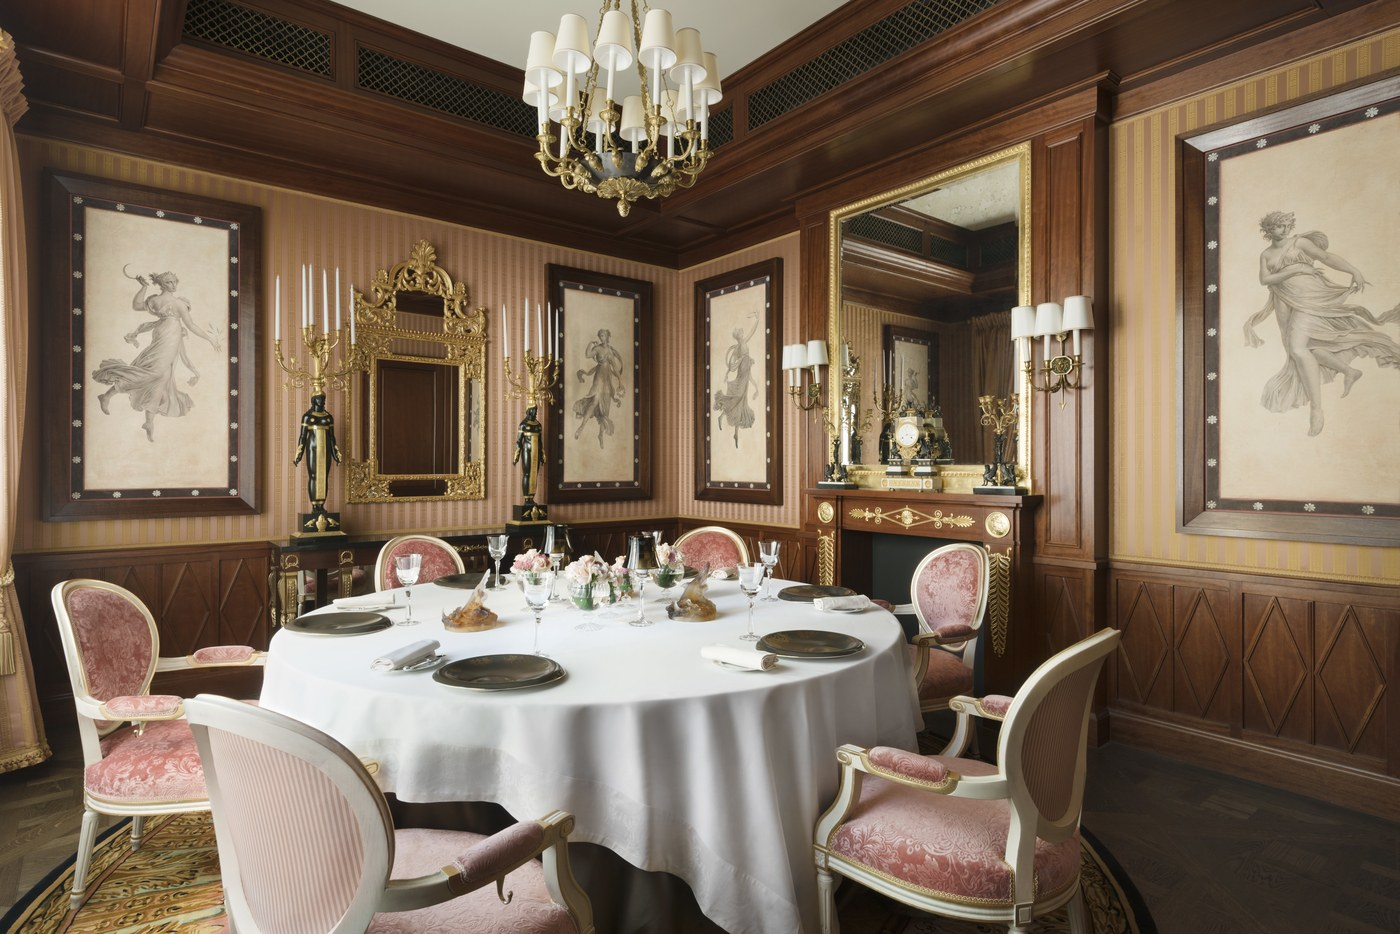 Private Dining Room The Worldu0027s Most Remarkable Private Dining Rooms 2 The  Worlds Most Remarkable Private